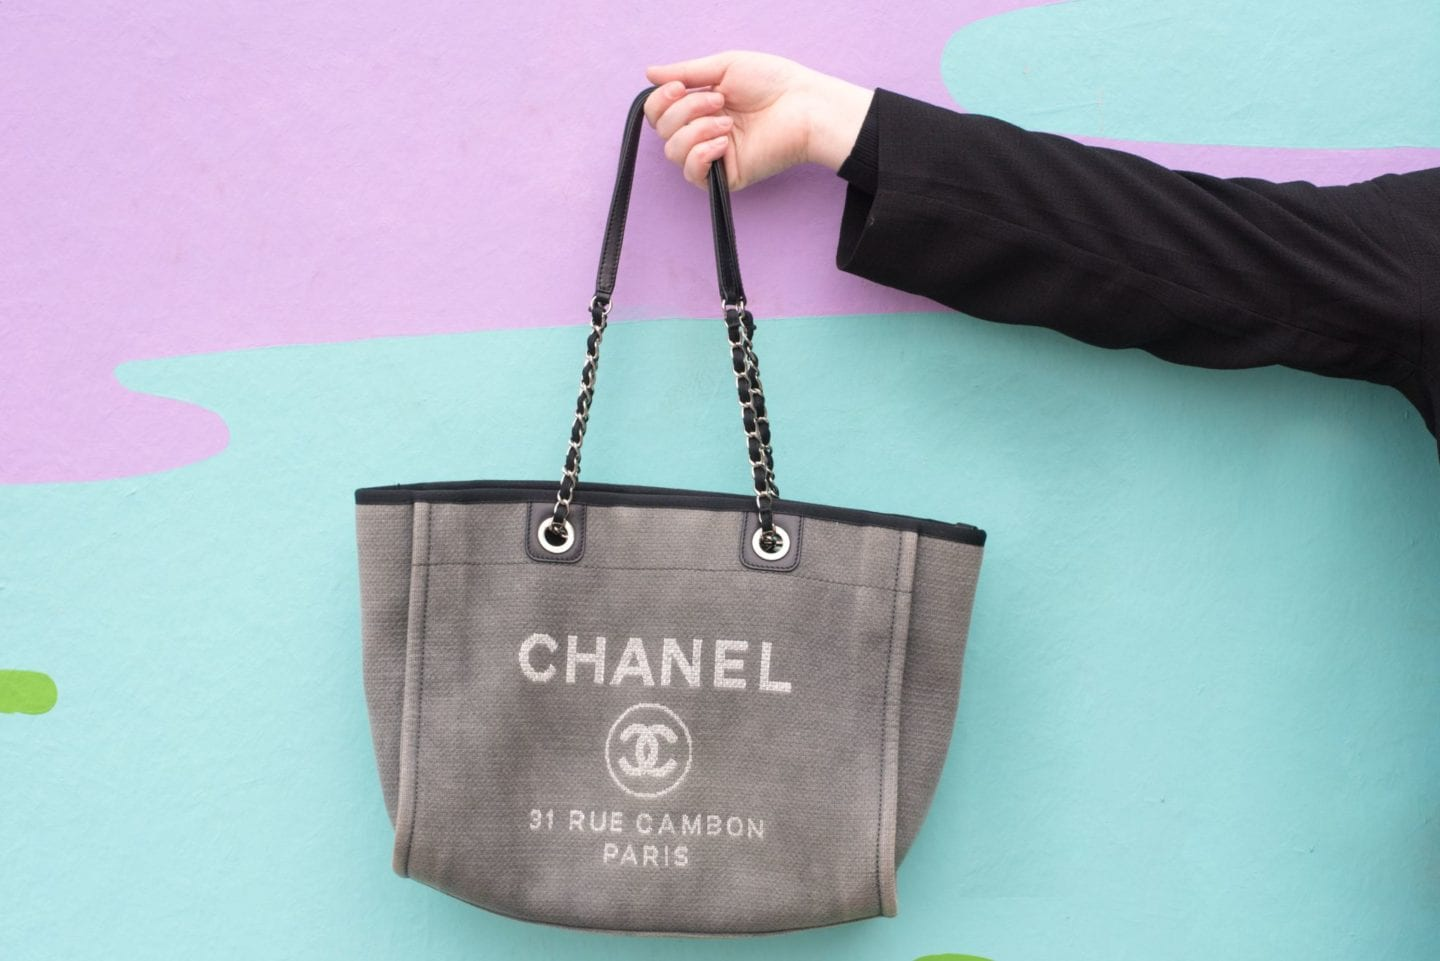 883c8831f491 My Thoughts On The Chanel Deauville Tote Bag... - Fashion For Lunch.